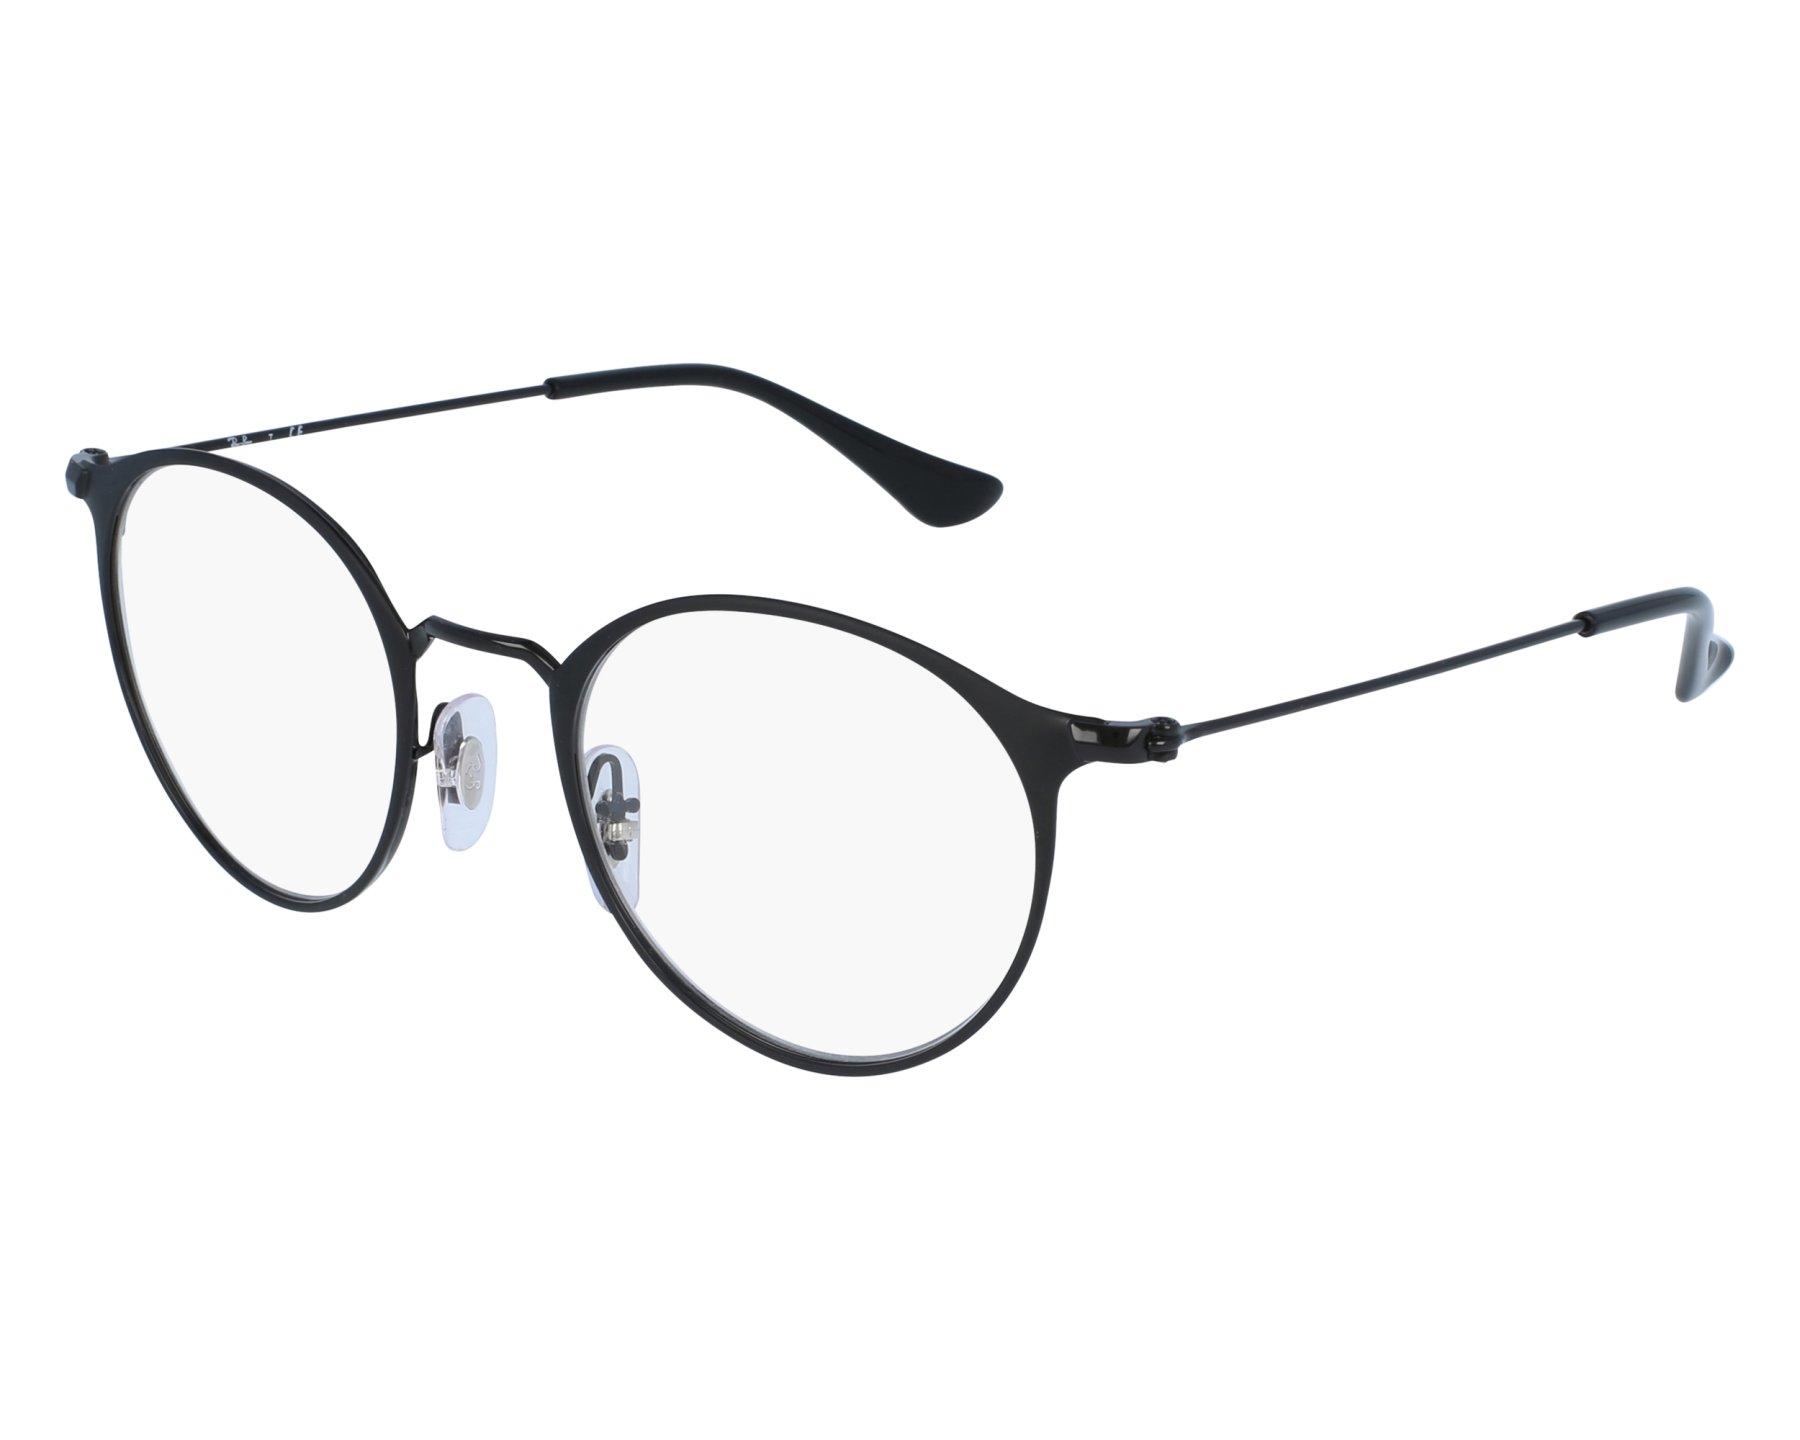 79c7d5f5f475c eyeglasses Ray-Ban RX-6378 2904 47-21 Black front view